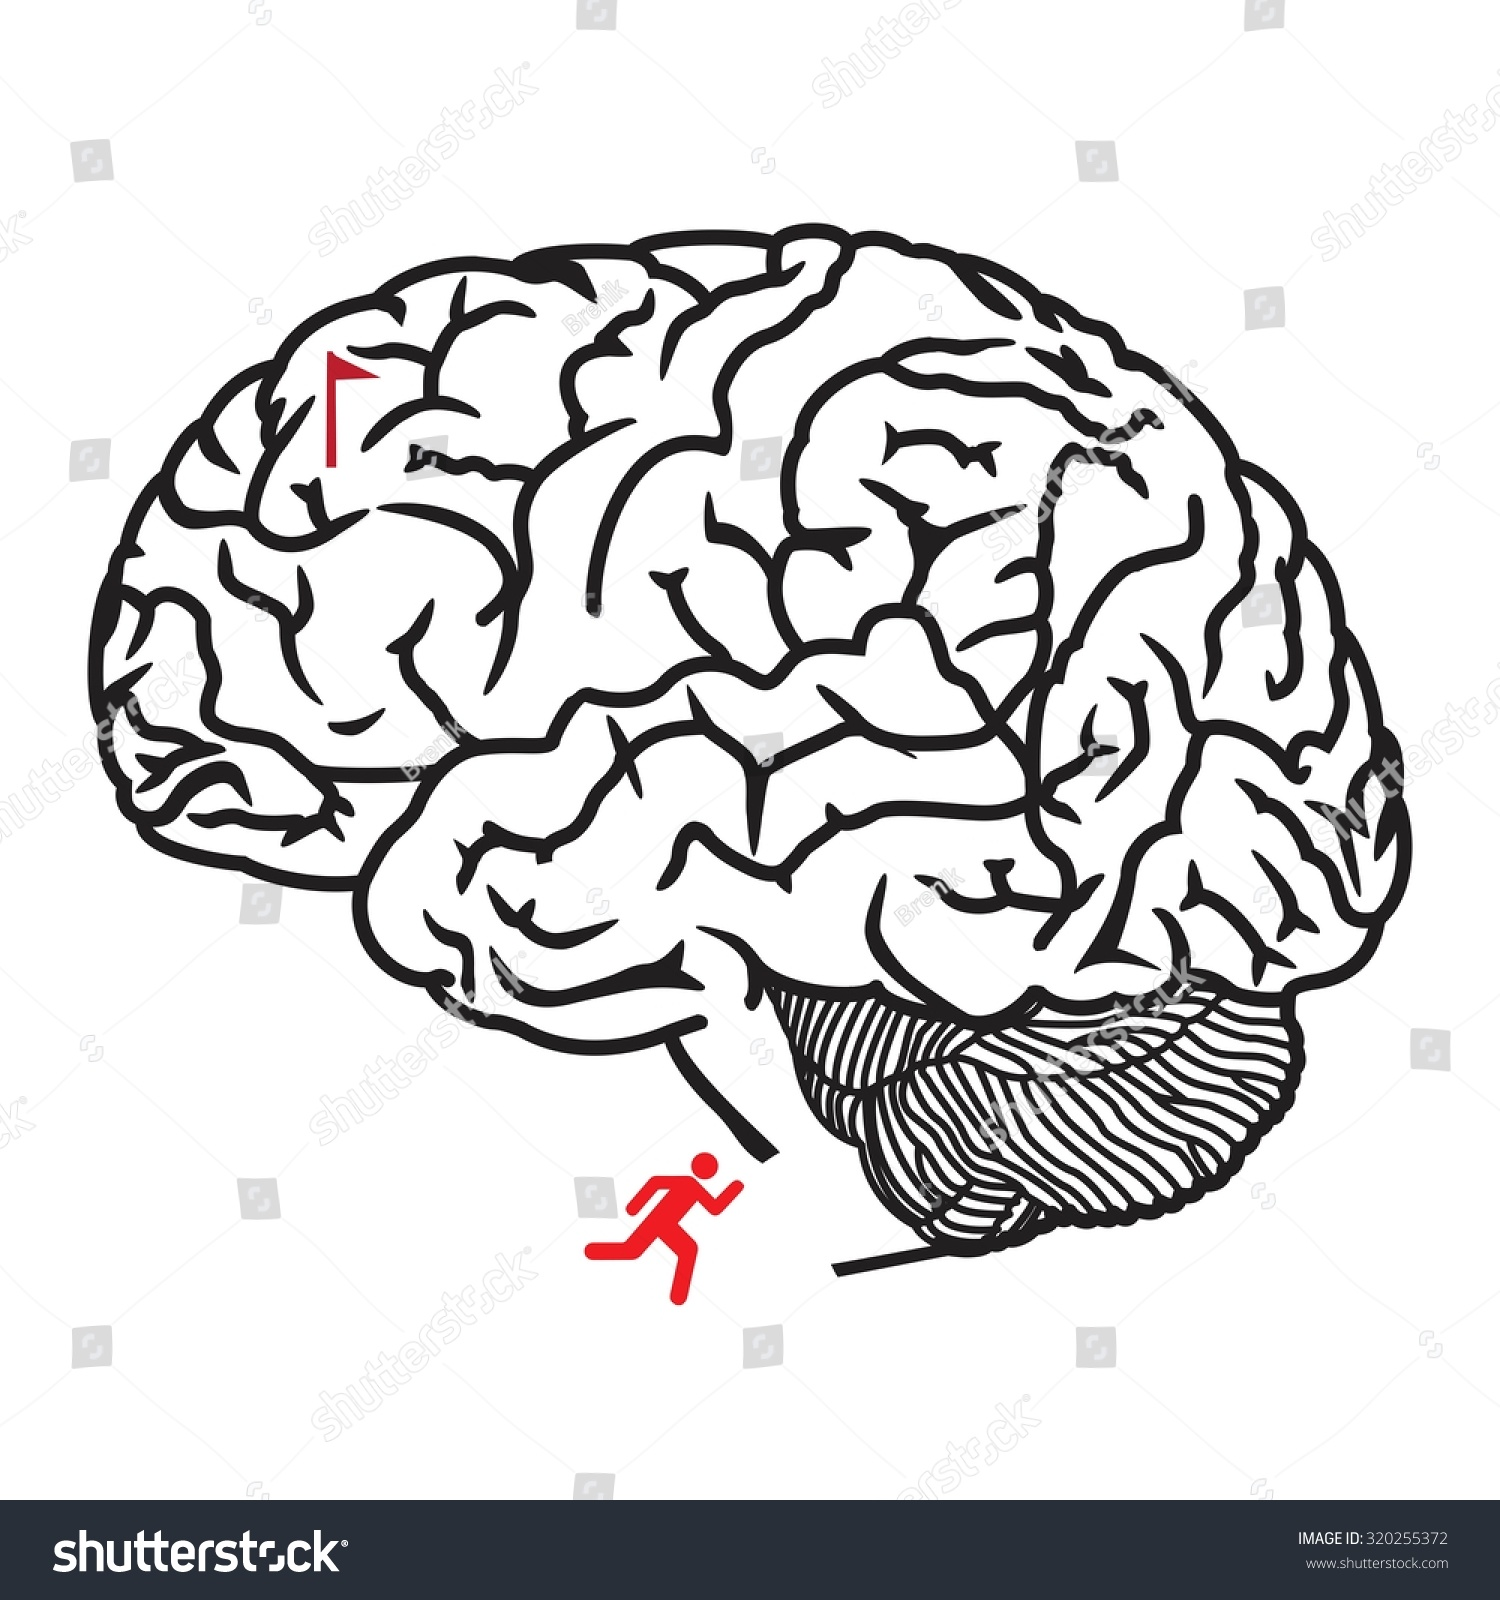 Maze Children Human Brain Vector Illustration Stock Vector